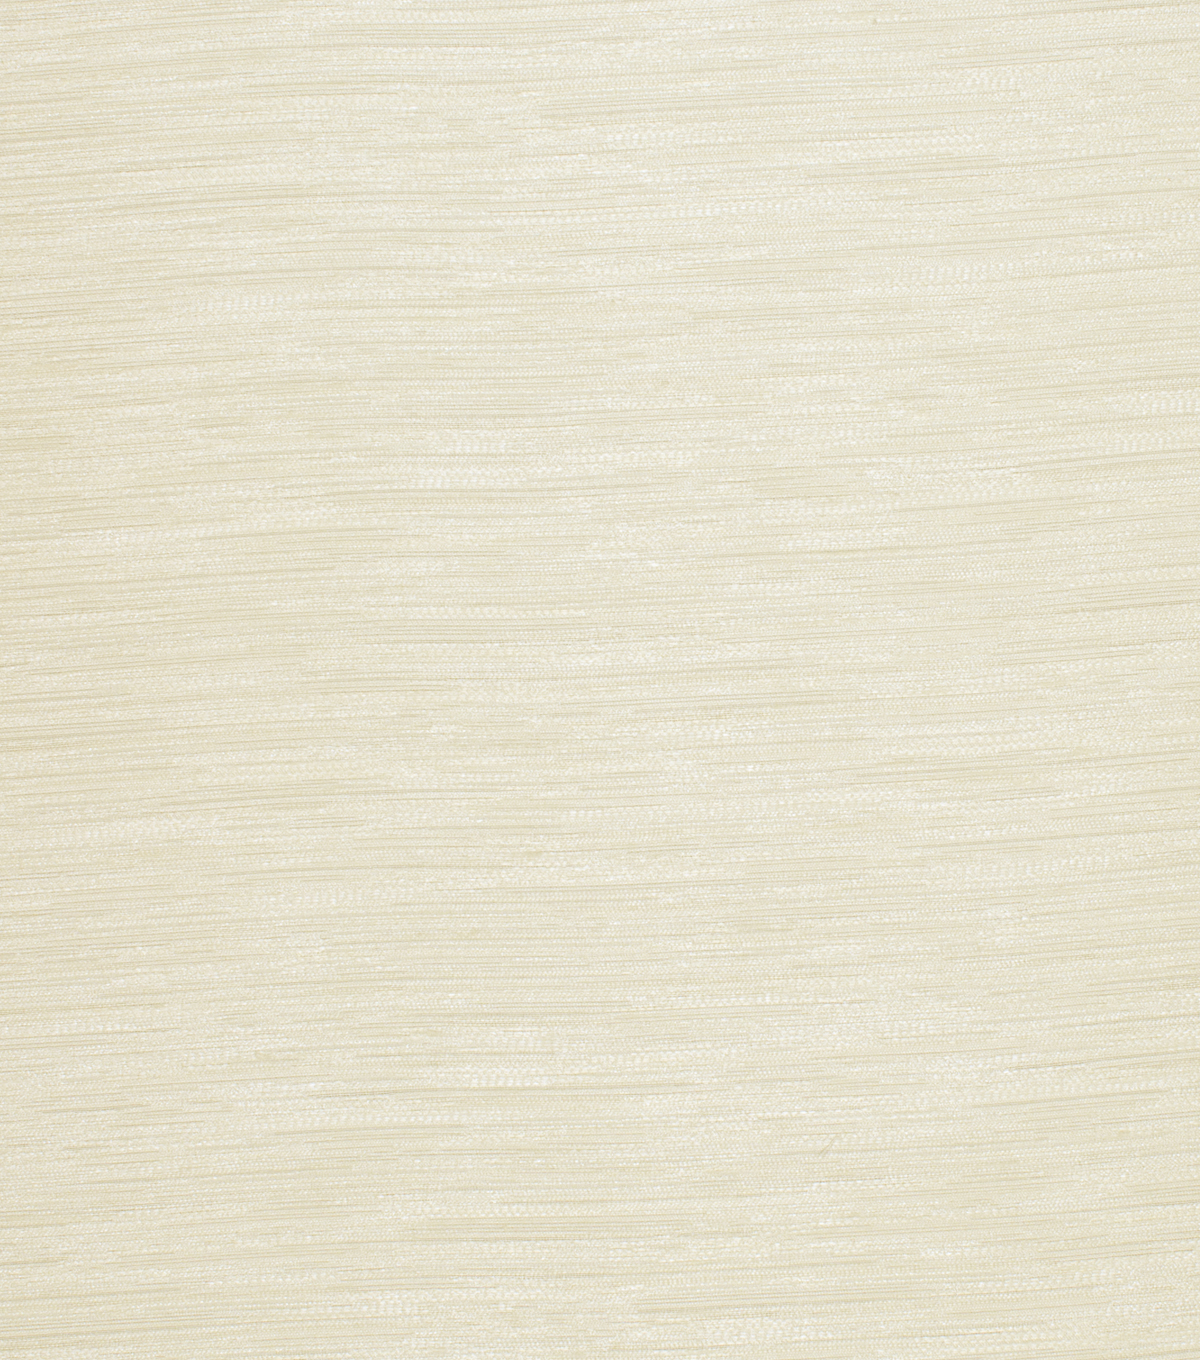 Home Decor 8x8 Fabric Swatch-Eaton Square Ask Ivory